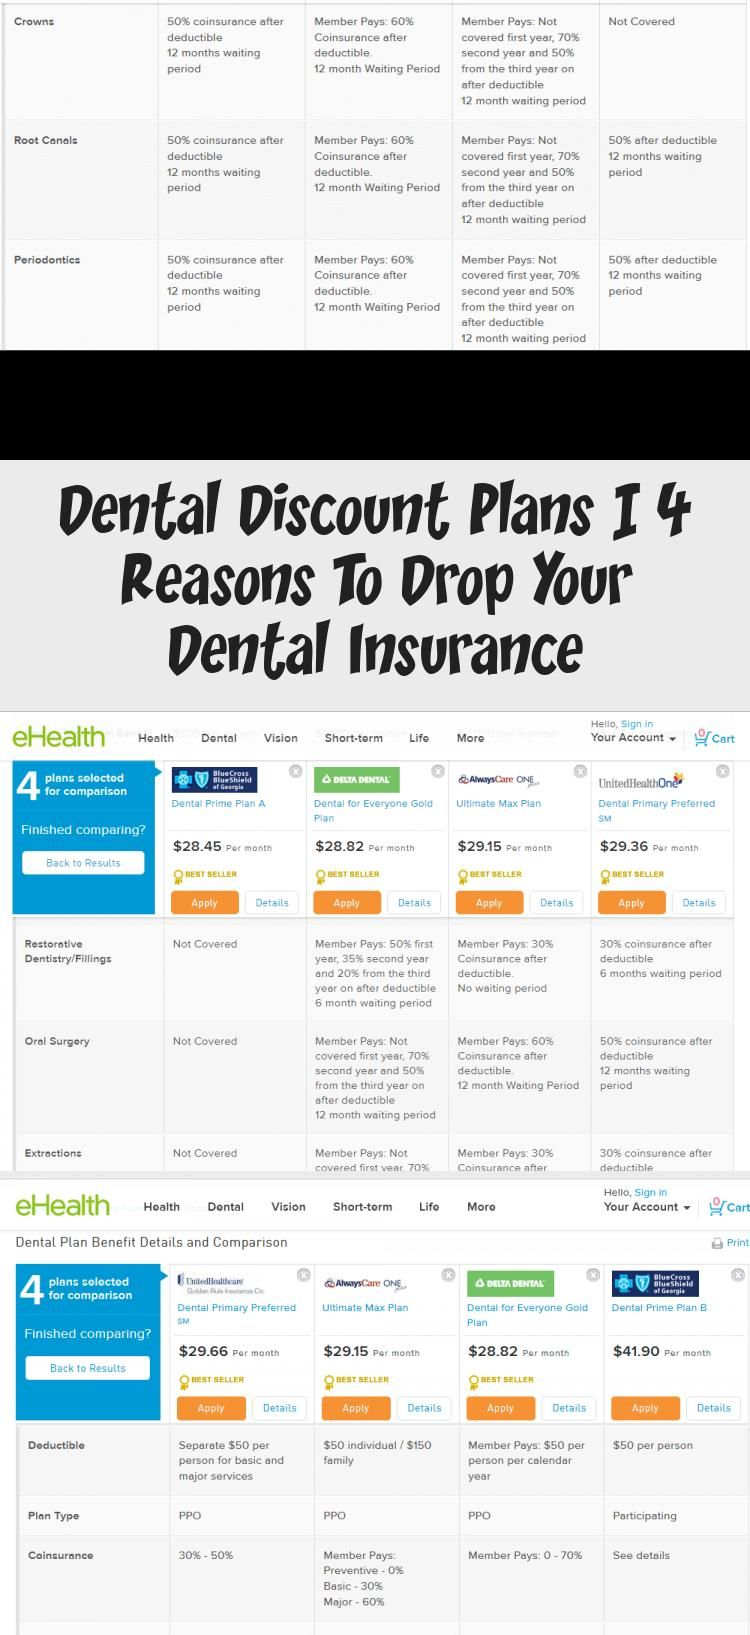 Dental Discount Plans If You Are Trying To Save Money On Dental